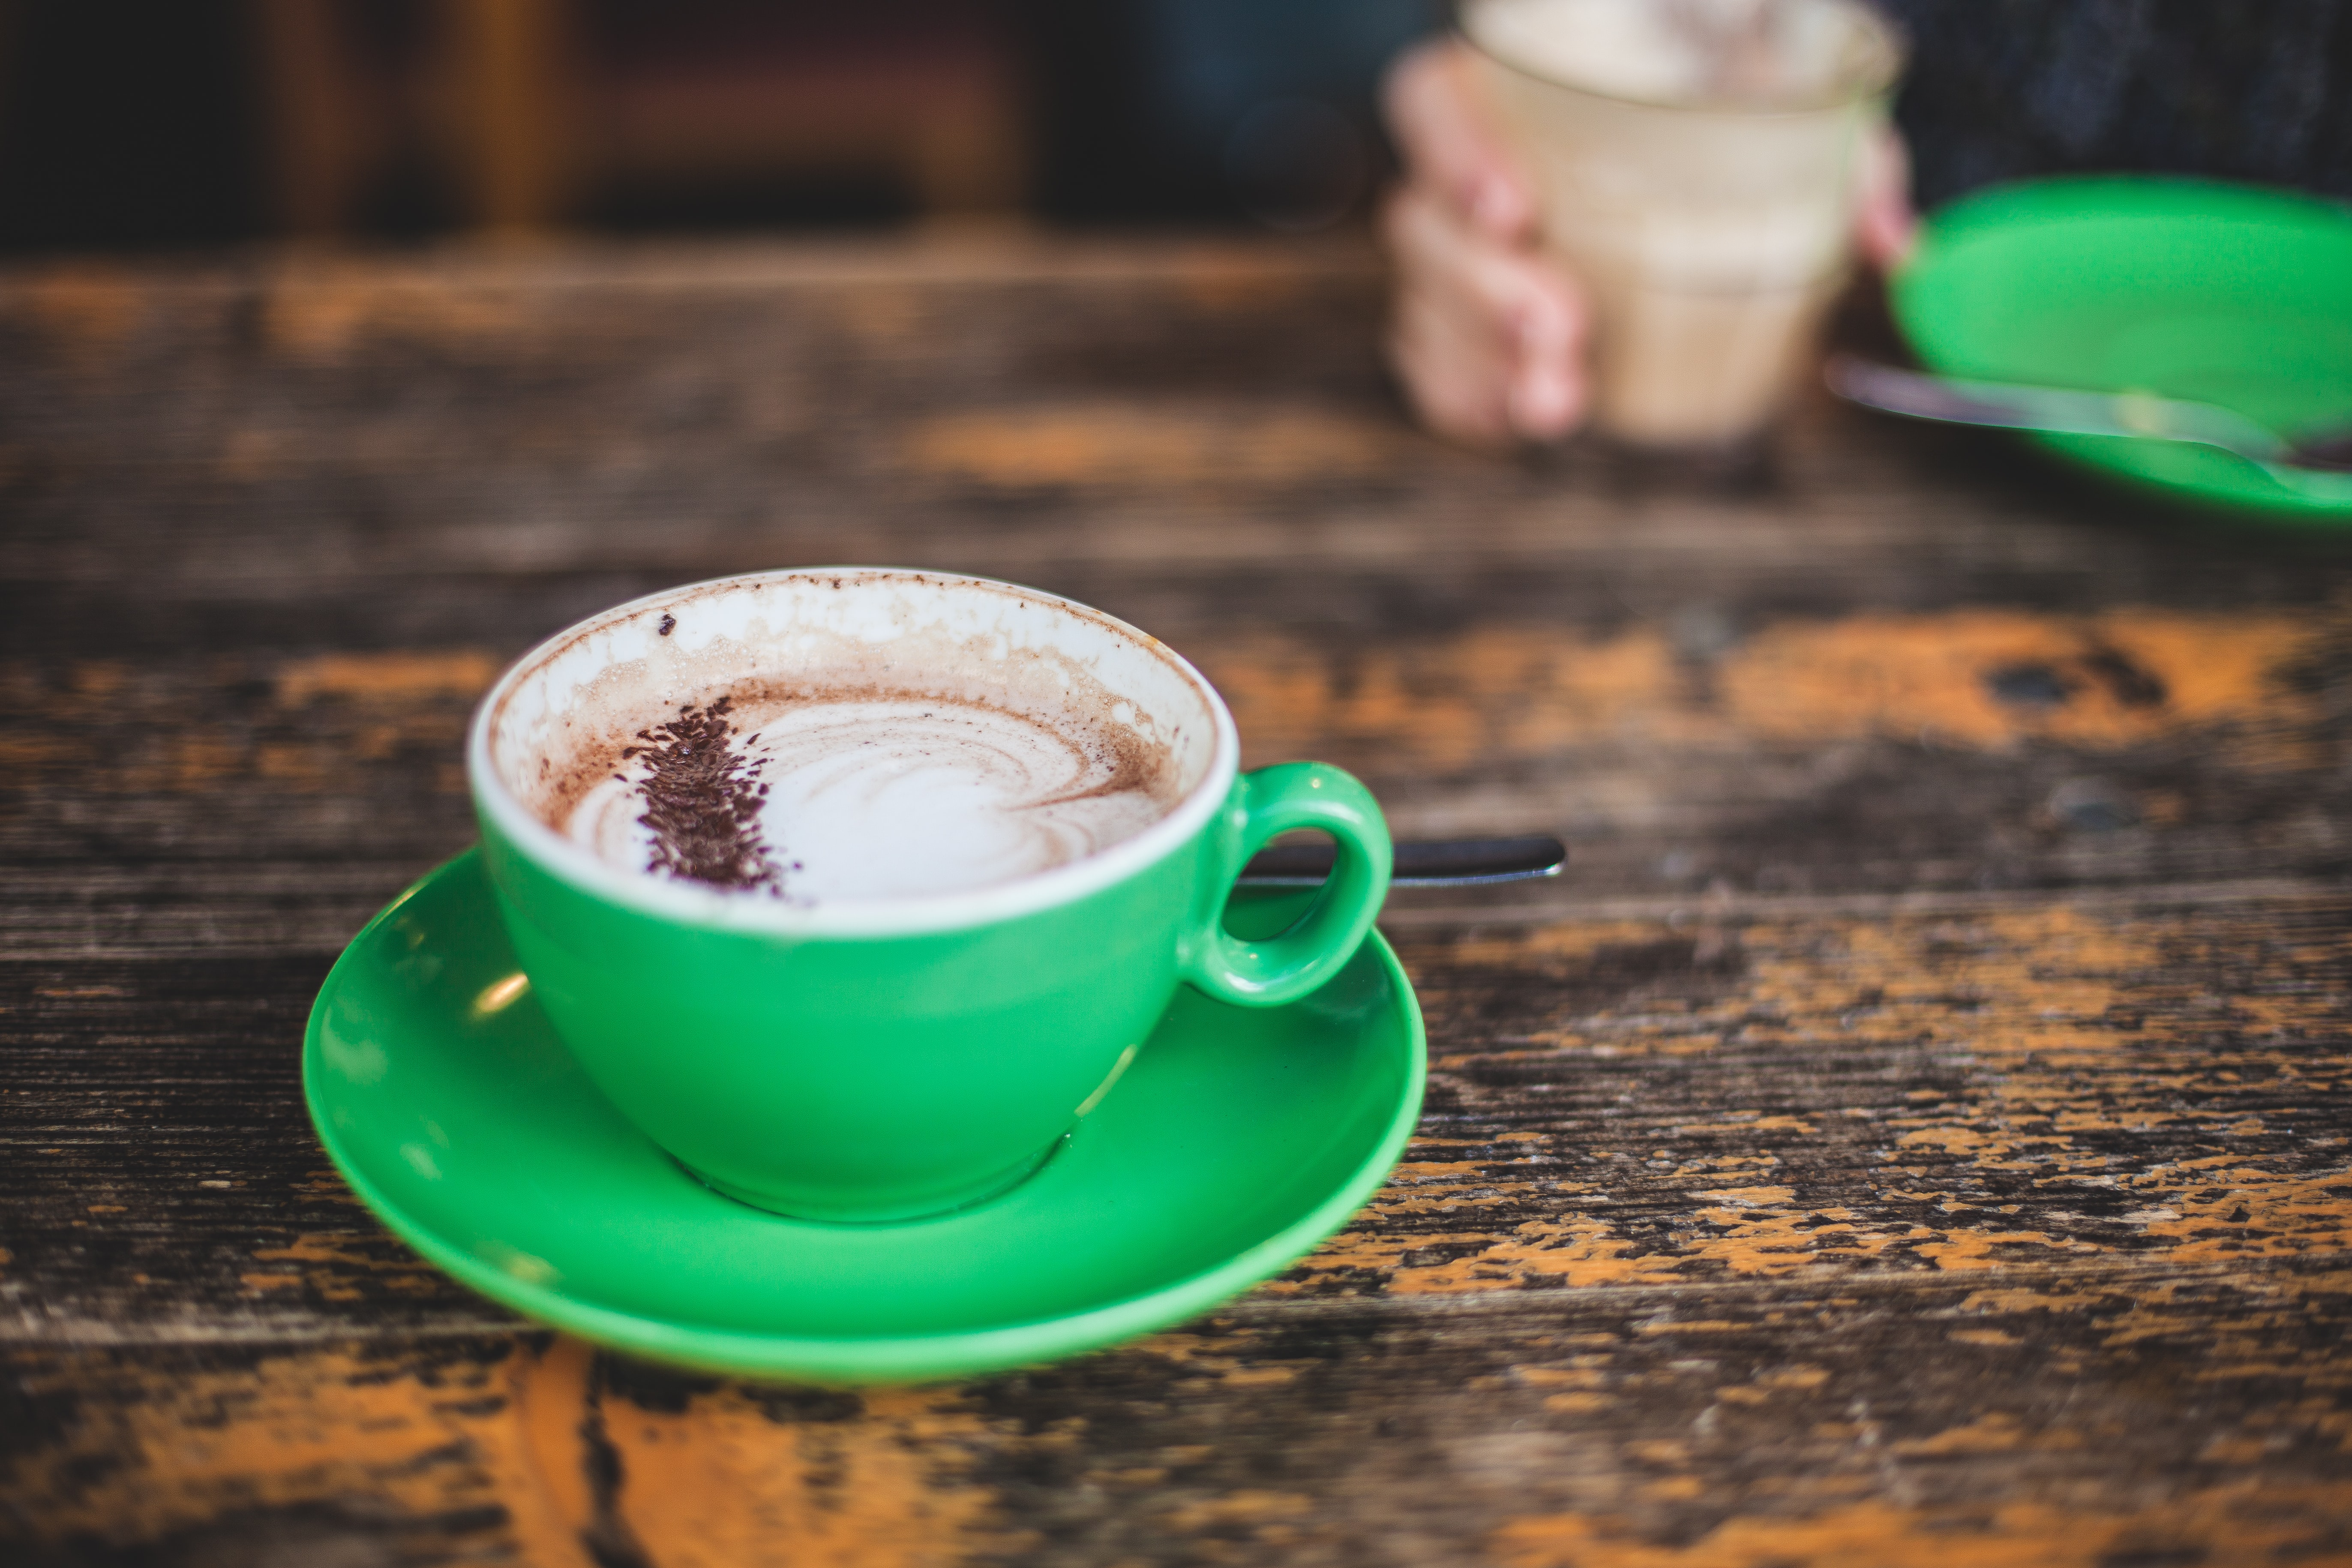 A latte in a green cup on a table with a person drinking their coffee on the other side